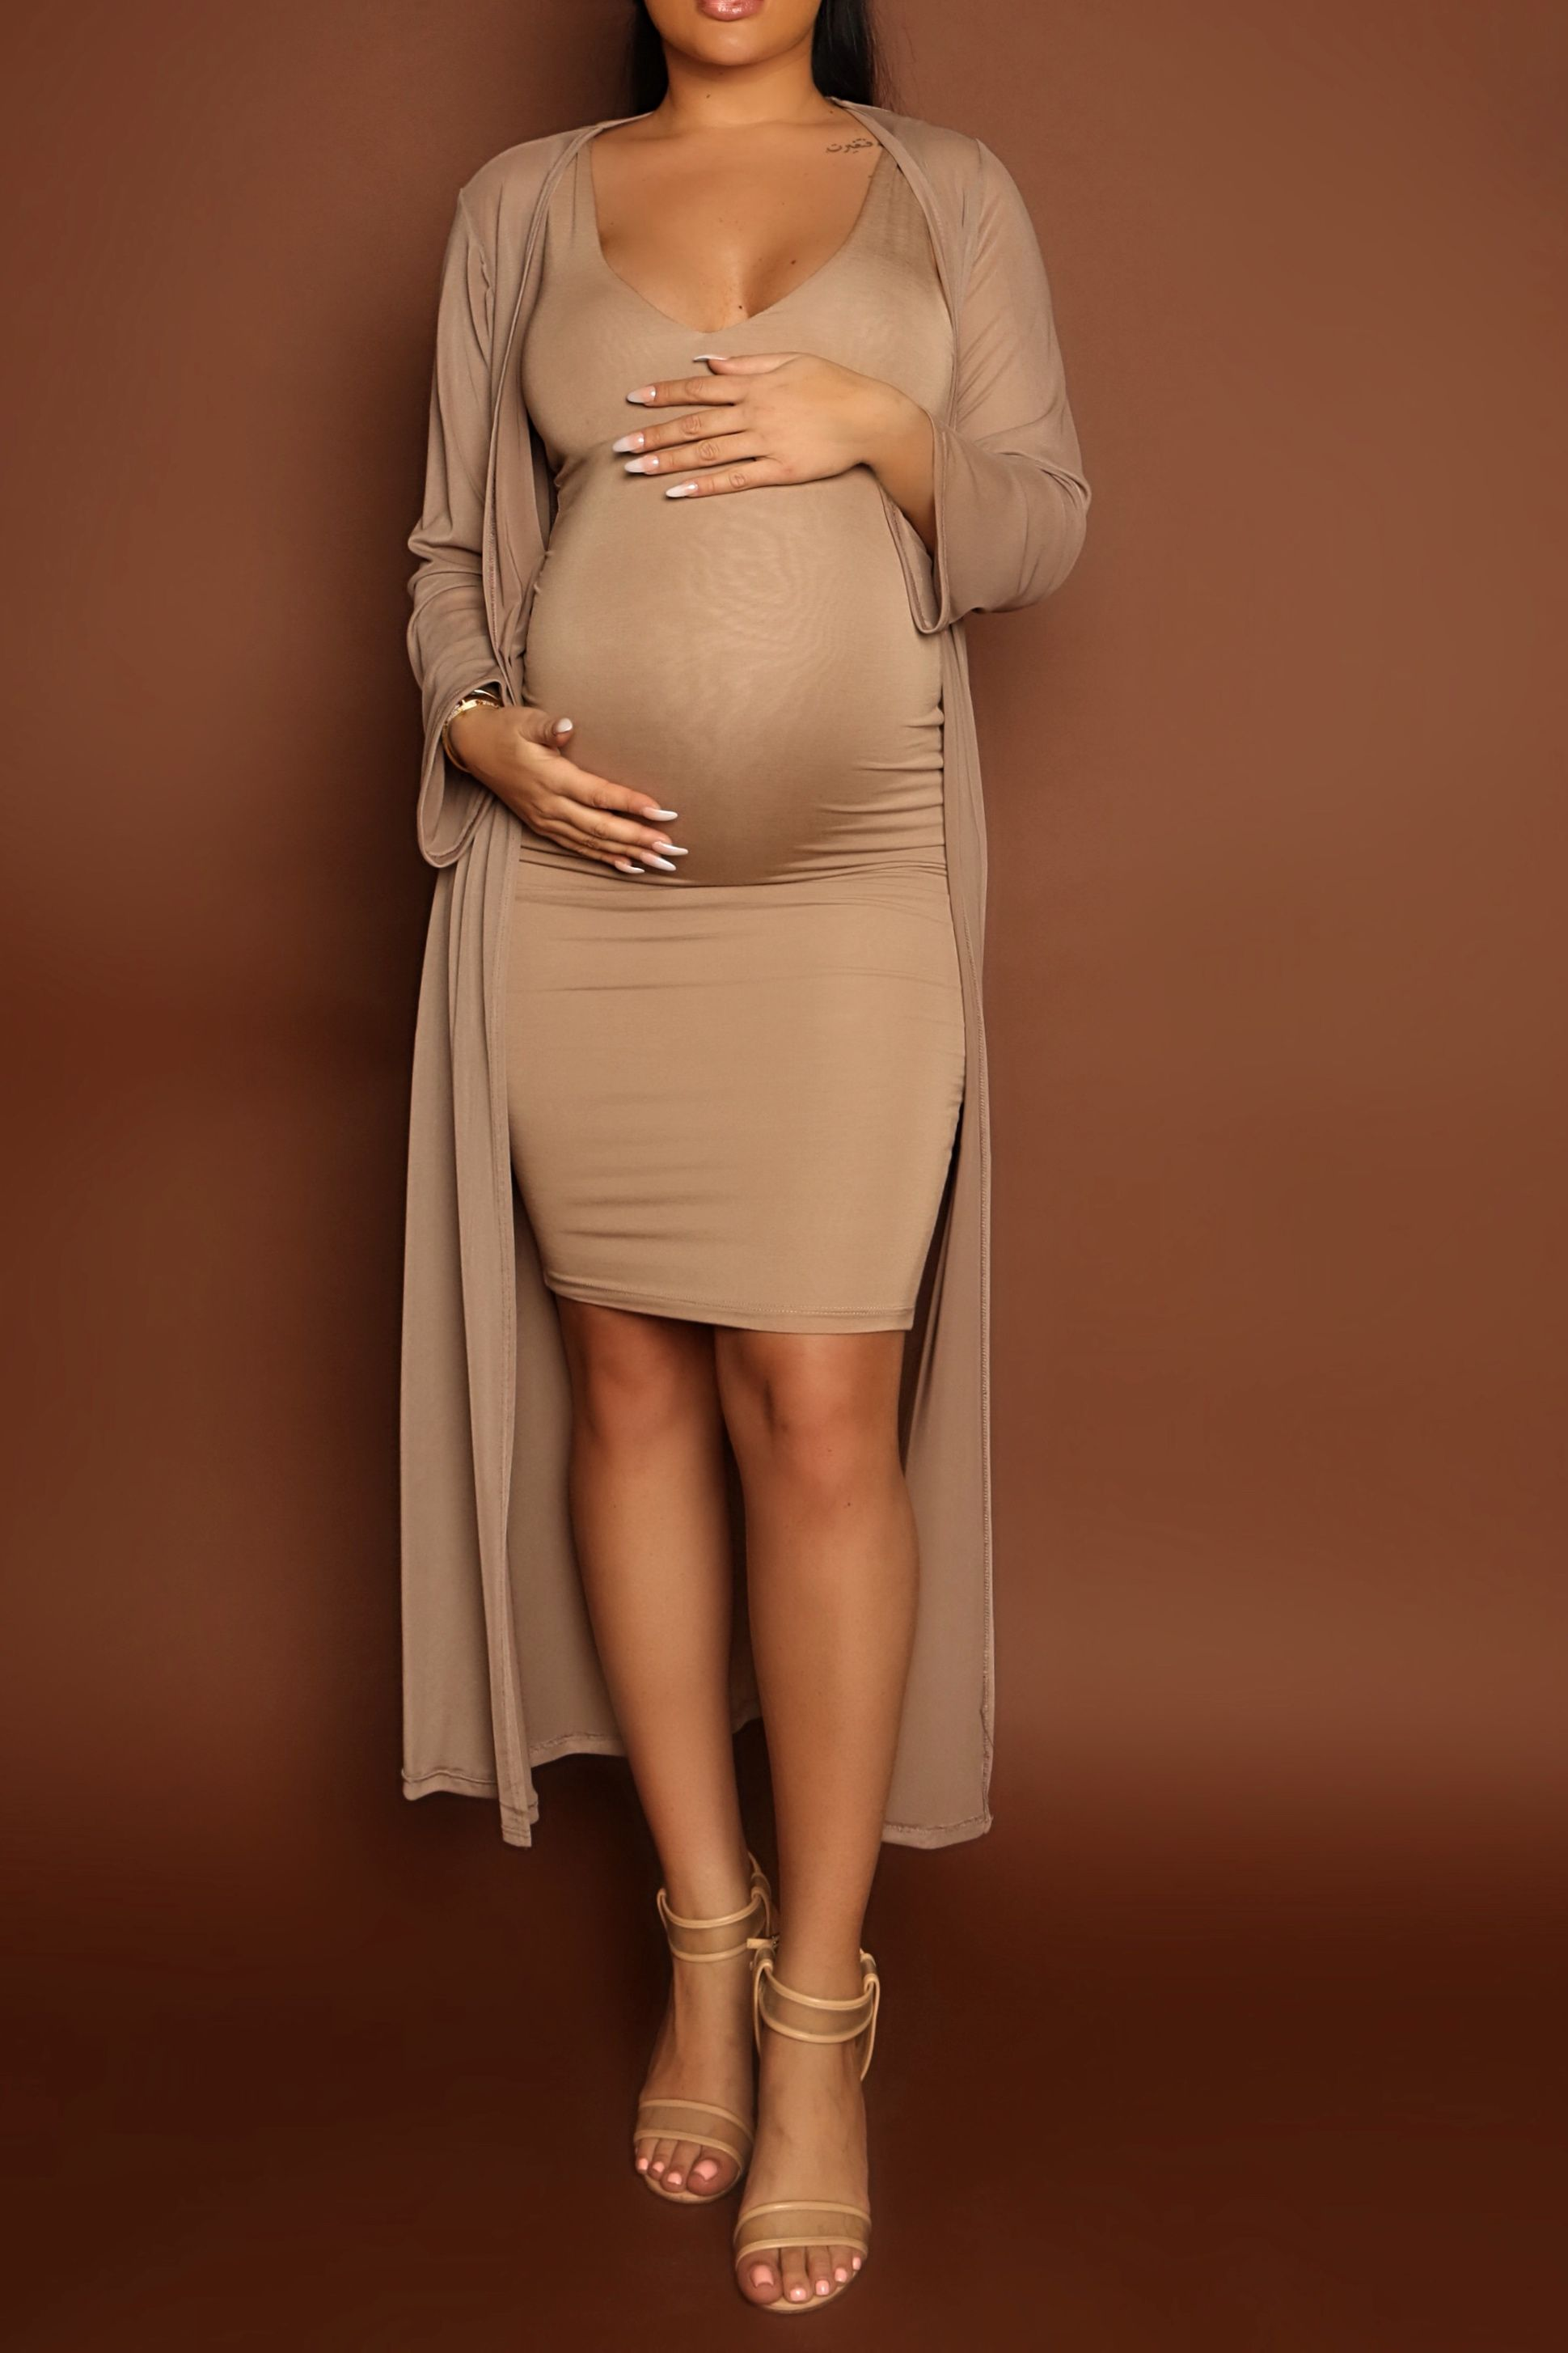 Maternity  Stylish maternity outfits, Maternity dresses for baby